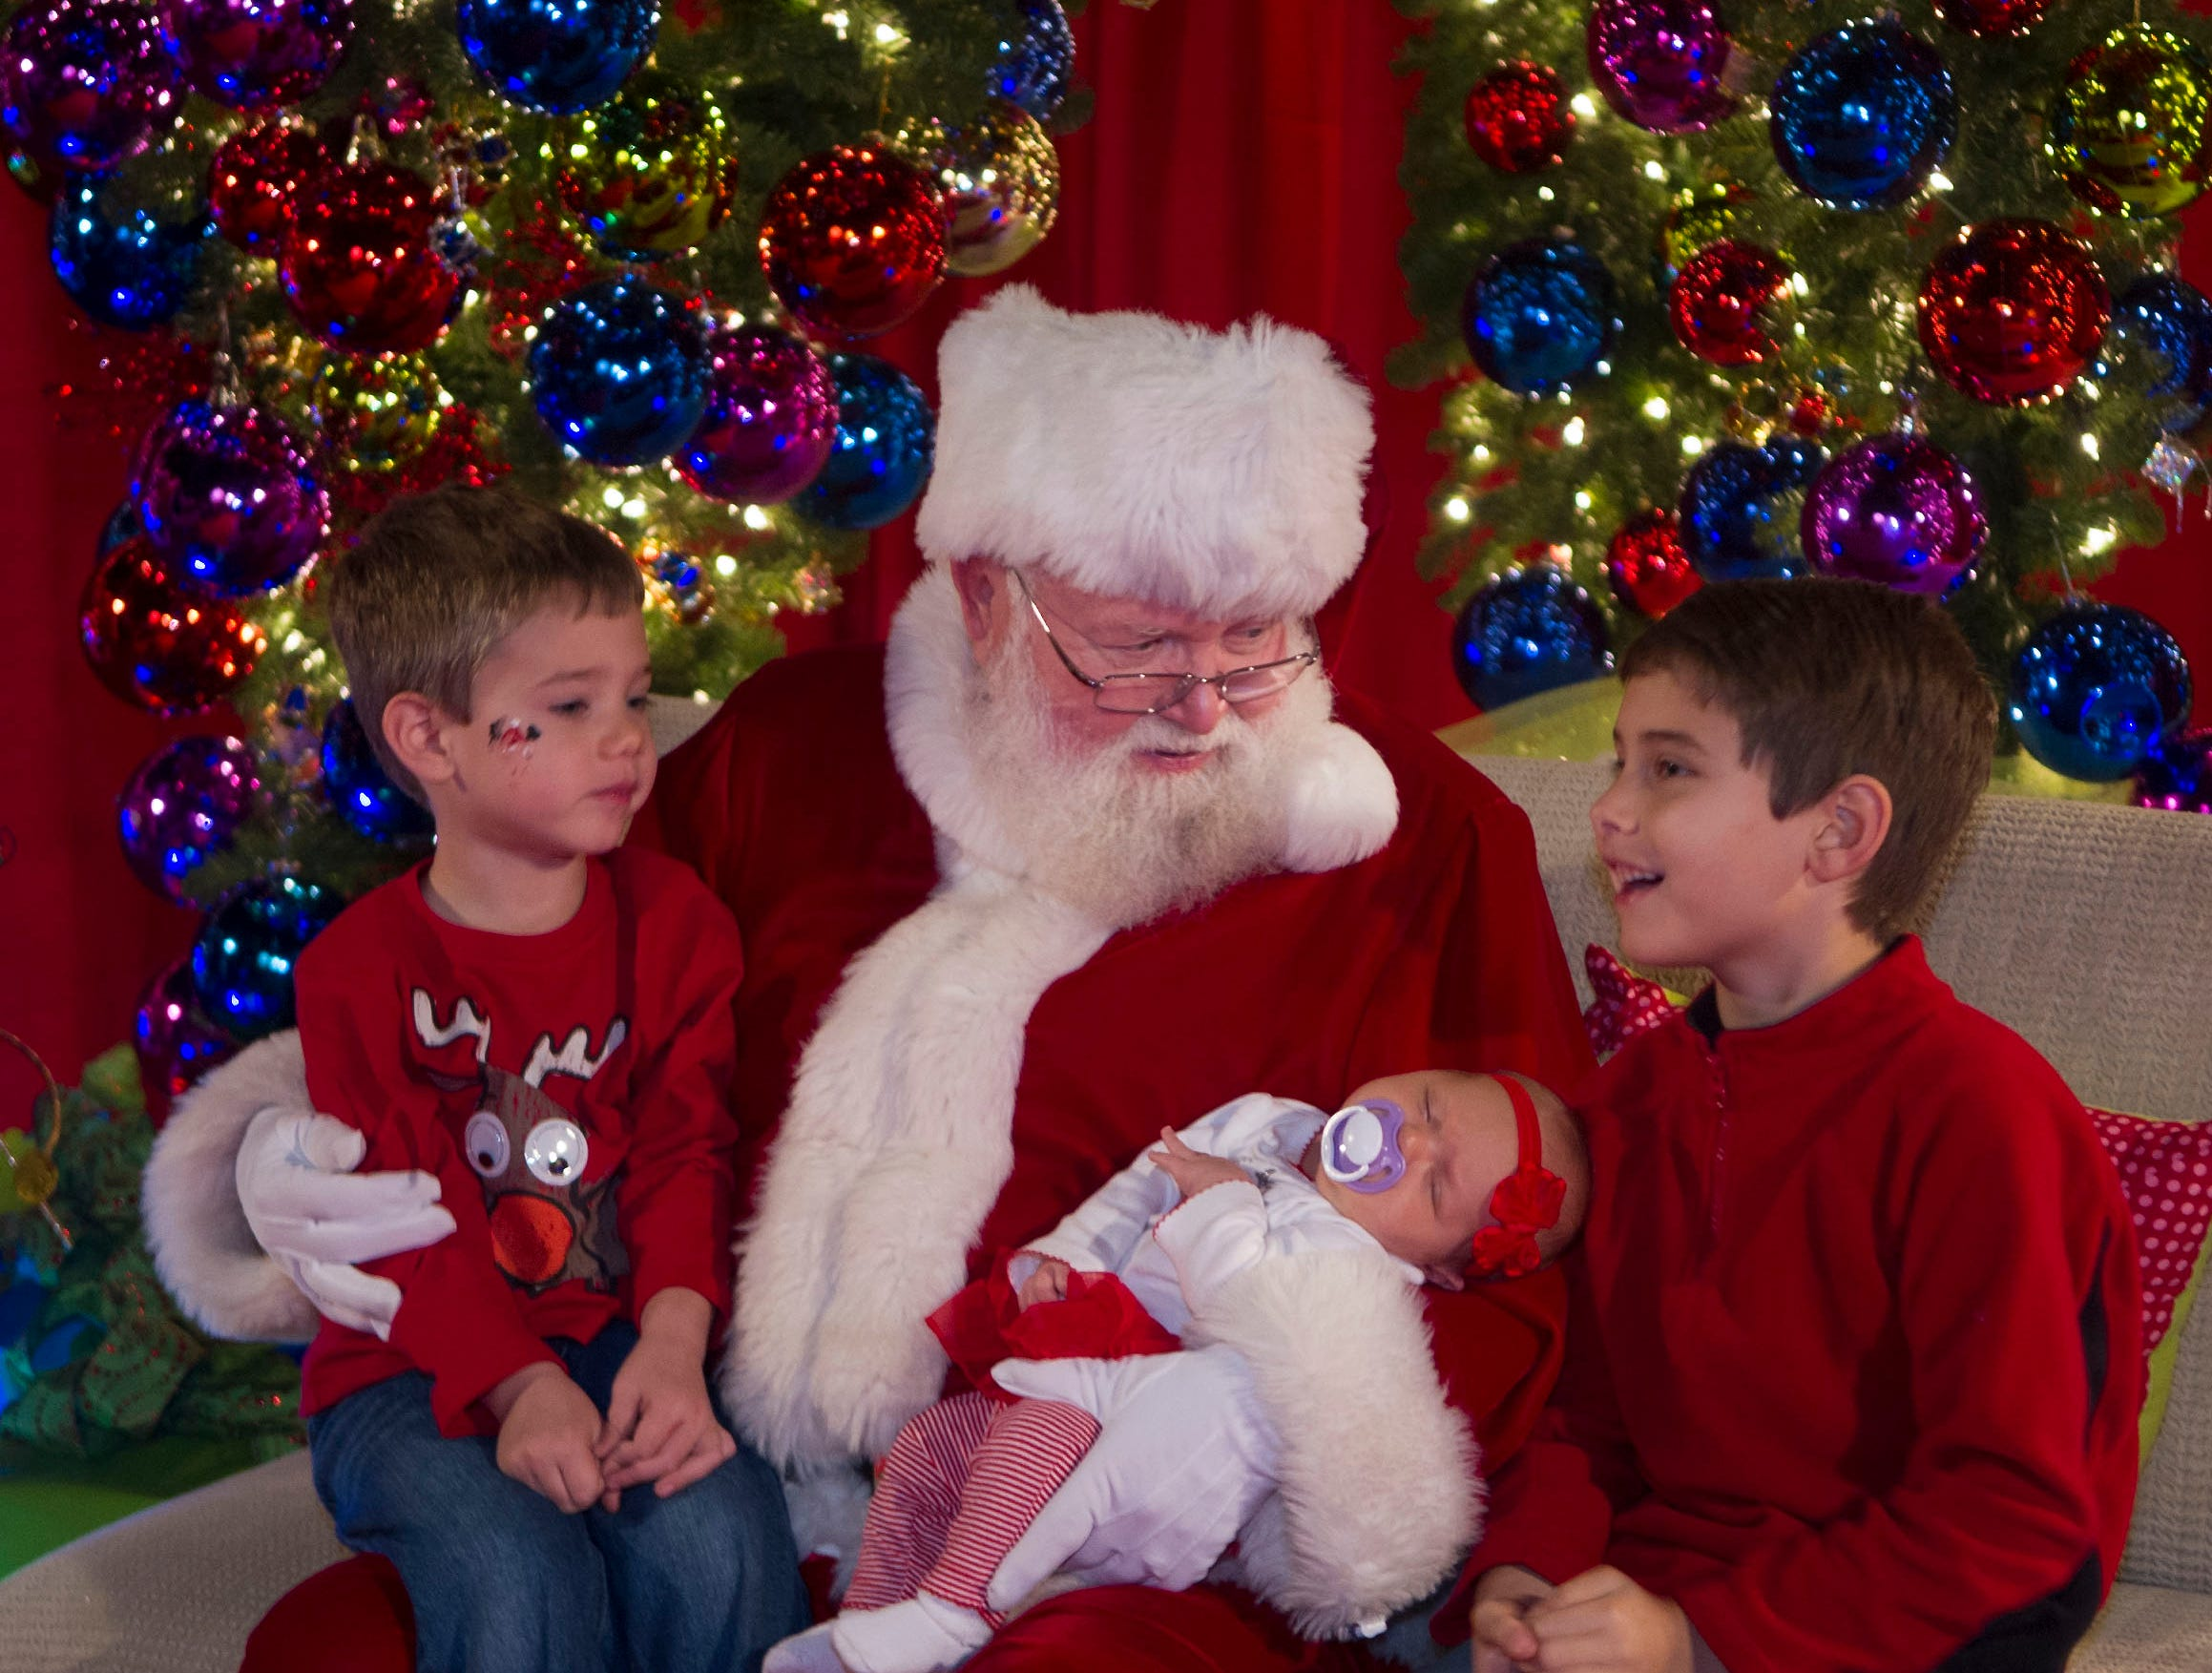 The Lunsford children from Karns give Santa Claus their Christmas wishes at the Fantasy of Trees.   Daniel Lunsford, 3, left, Santa, Samantha Lunsford 1 month old and Adam Lunsford, 6, right.The 28th Fantasy of Trees once again transforms the downtown Knoxville Convention Center into a winter wonderland of decorated trees, gingerbread houses, holiday shops and children's activities, helping move Thanksgiving week into the Christmas season. ( J. MILES CARY/NEWS SENTINEL )